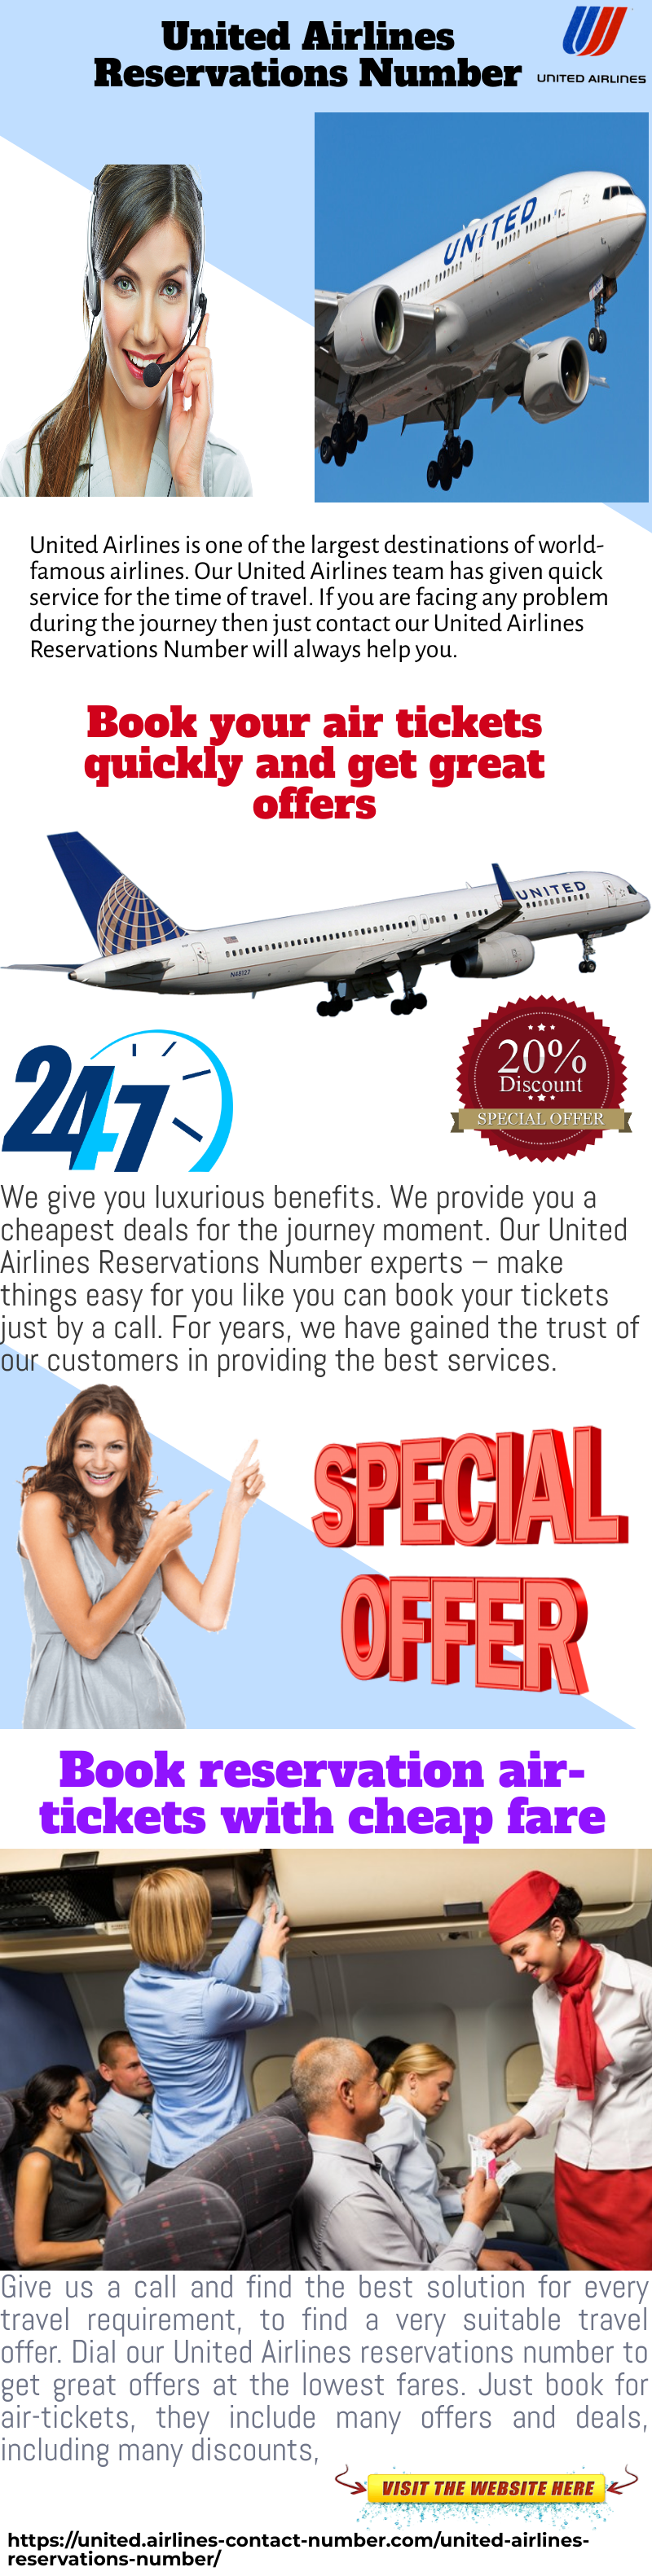 We give you luxurious benefits. We provide you the ...